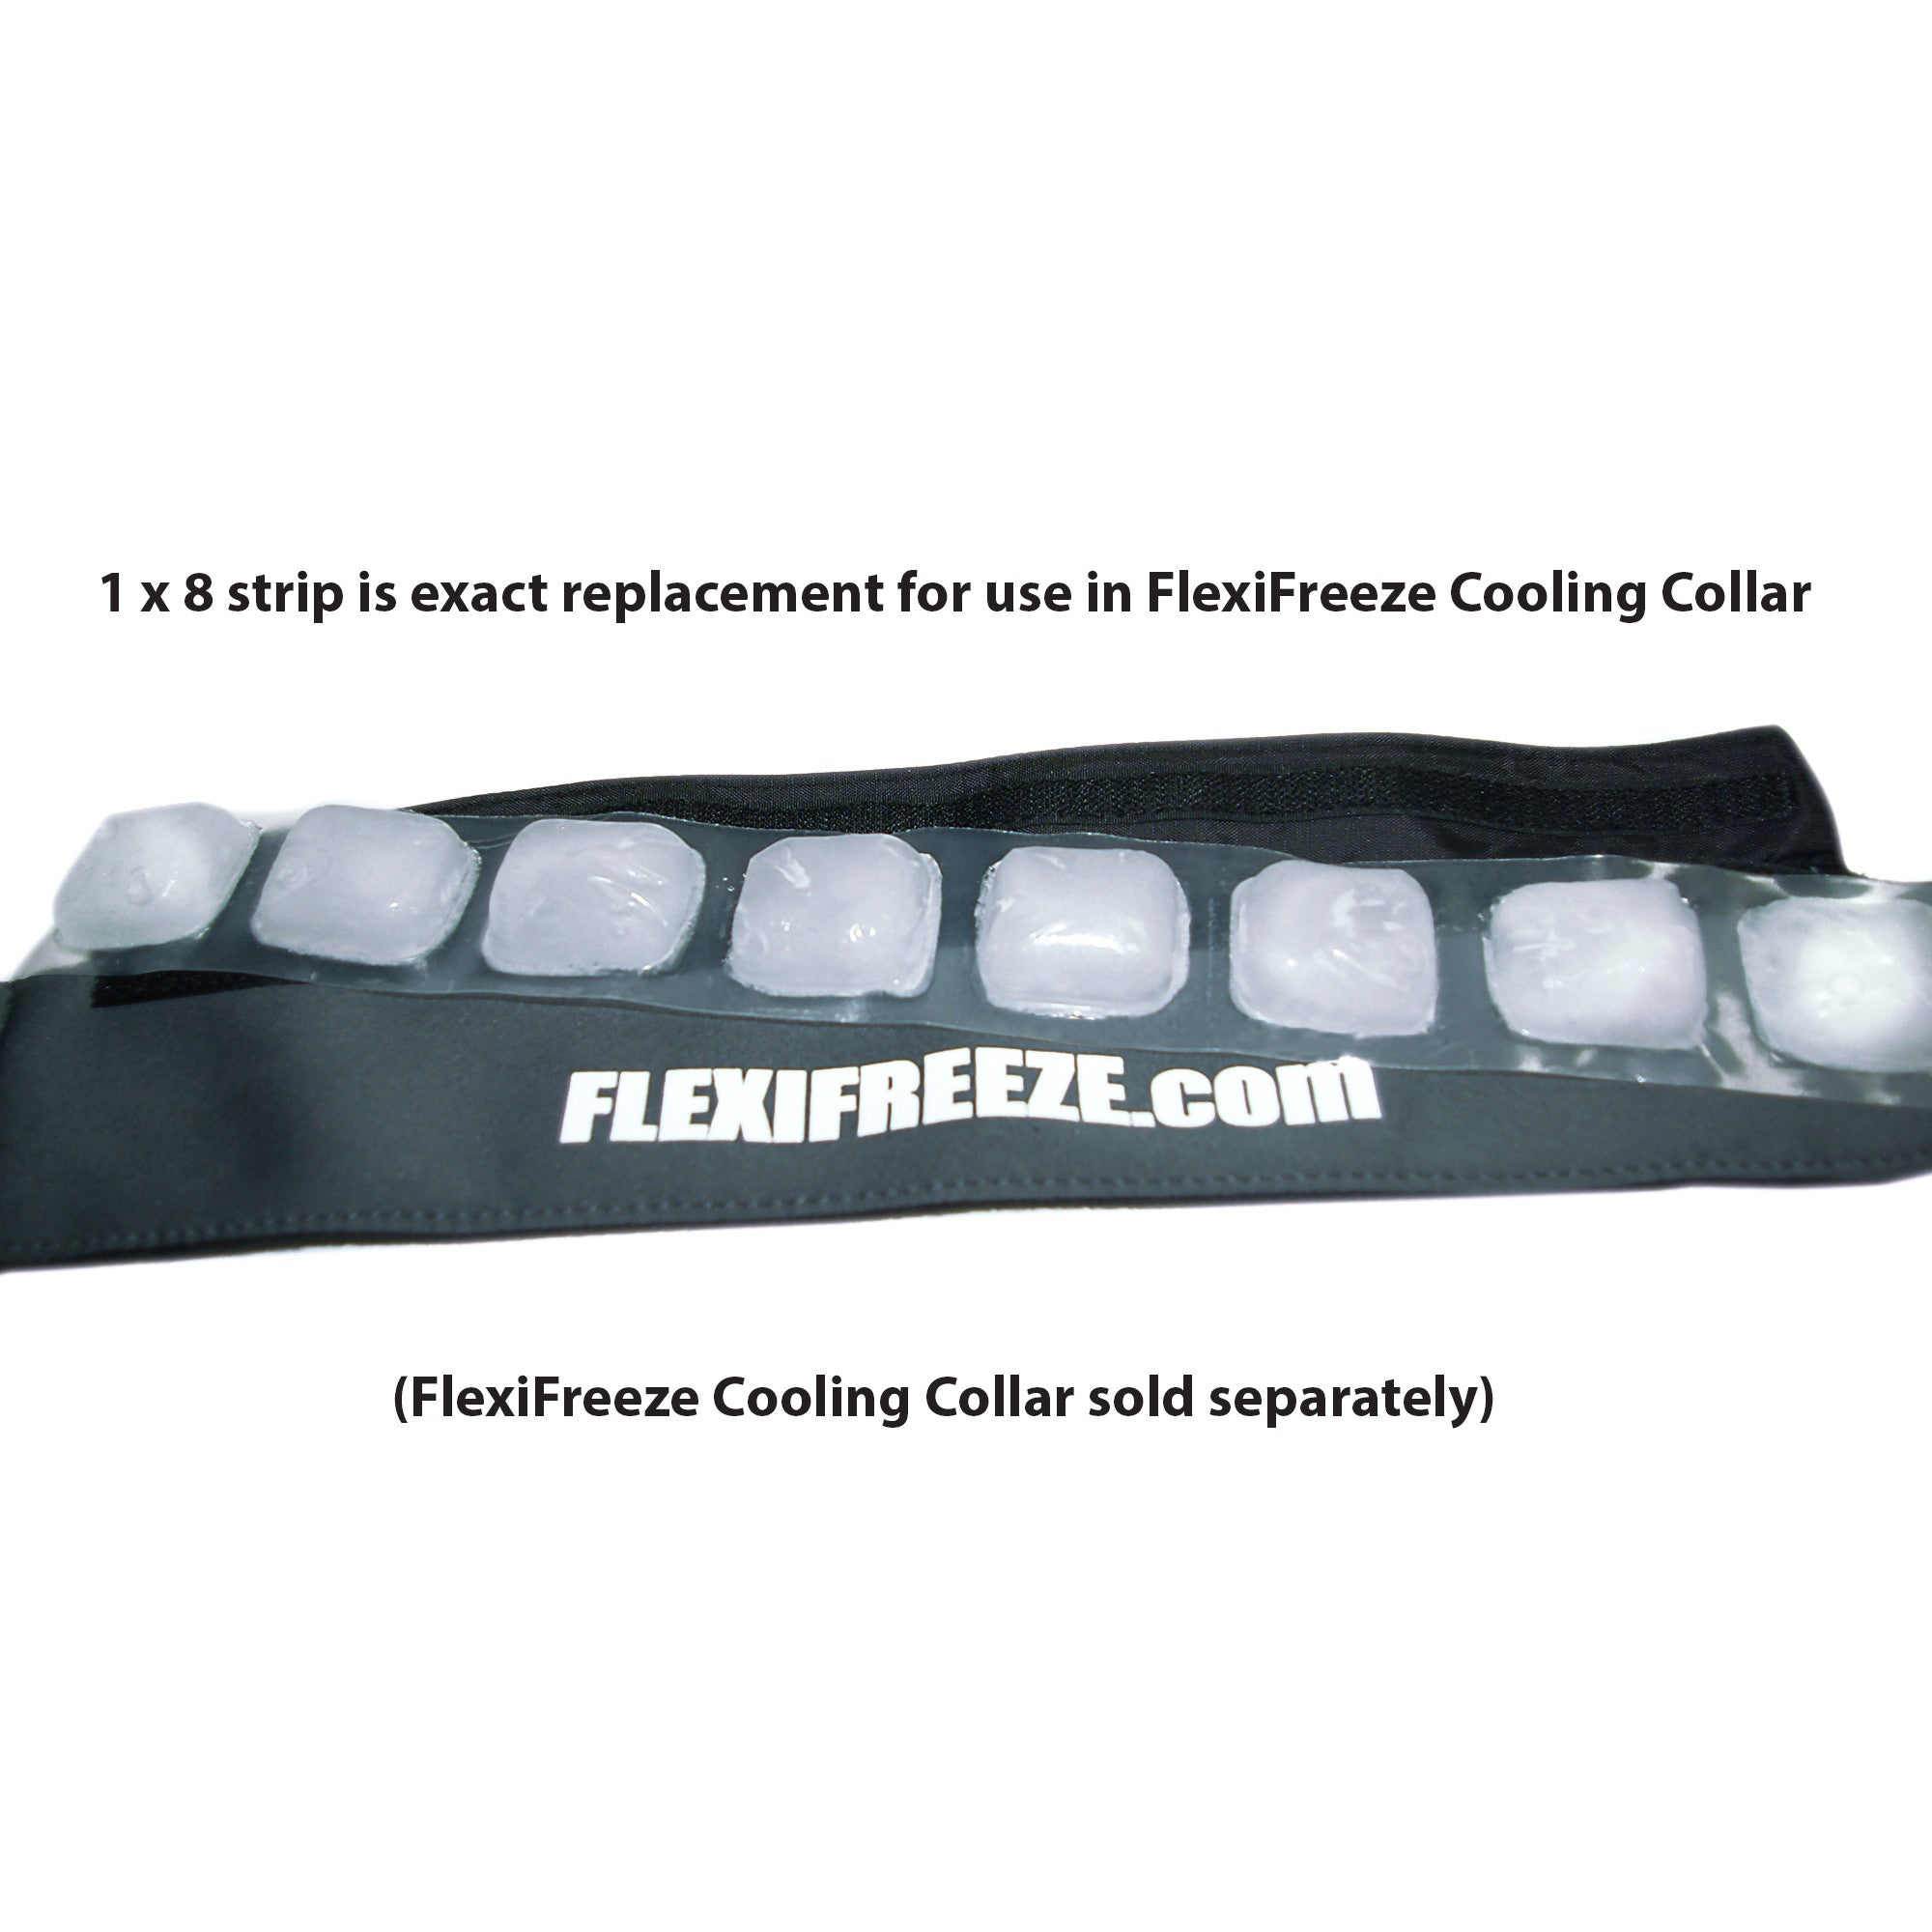 FlexiFreeze 8 cube ice strip, 6 pack